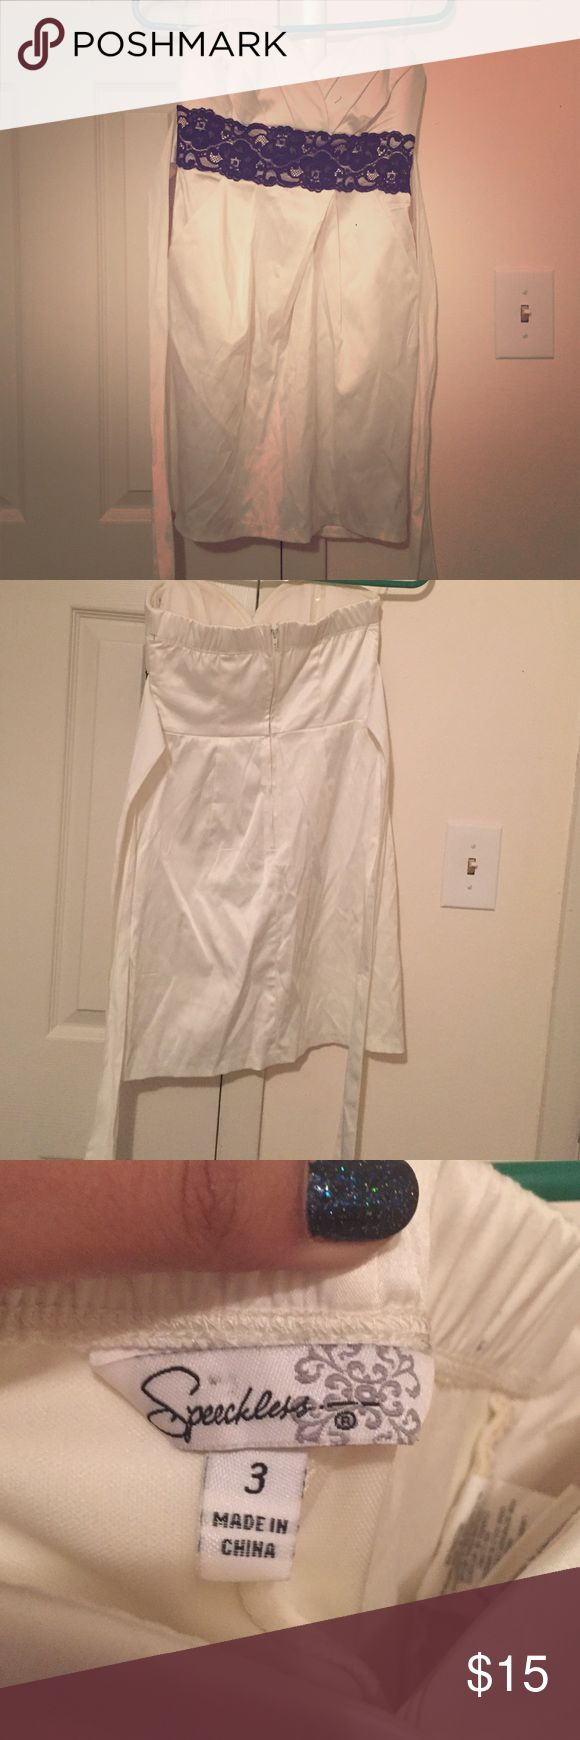 Strapless cream colored dress Size 3. Lace belt Dresses Strapless